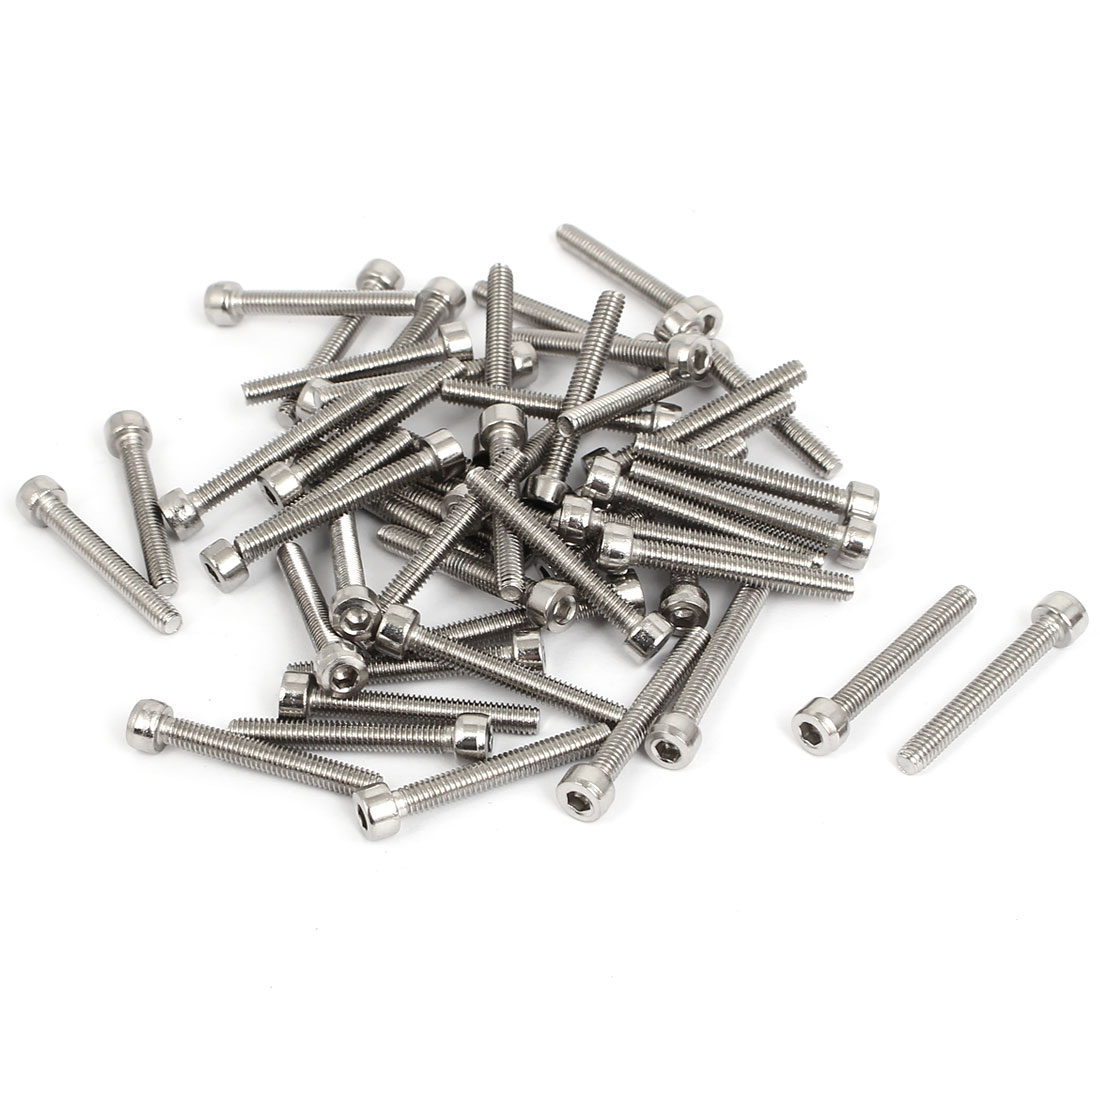 50pcs 3mm Stainless Steel Hex Key Socket Head Cap Screws Bolts M4x0.7mmx30mm